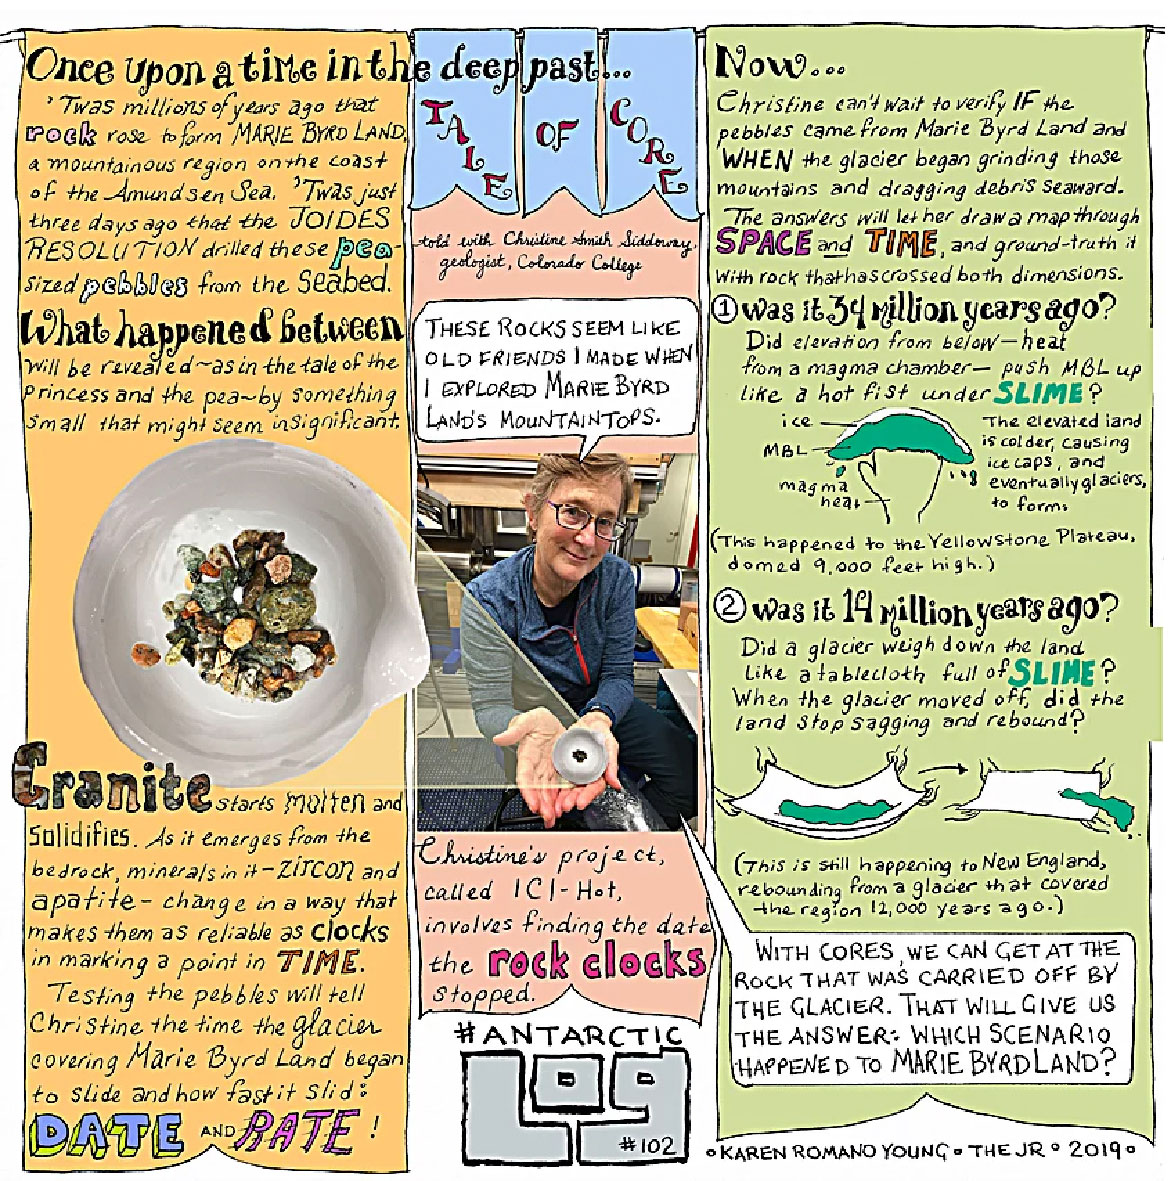 A feature on the ICI-Hot project from AntarcticLOG 2019 , by artist Karen Romano Young, who sailed on IODP379.